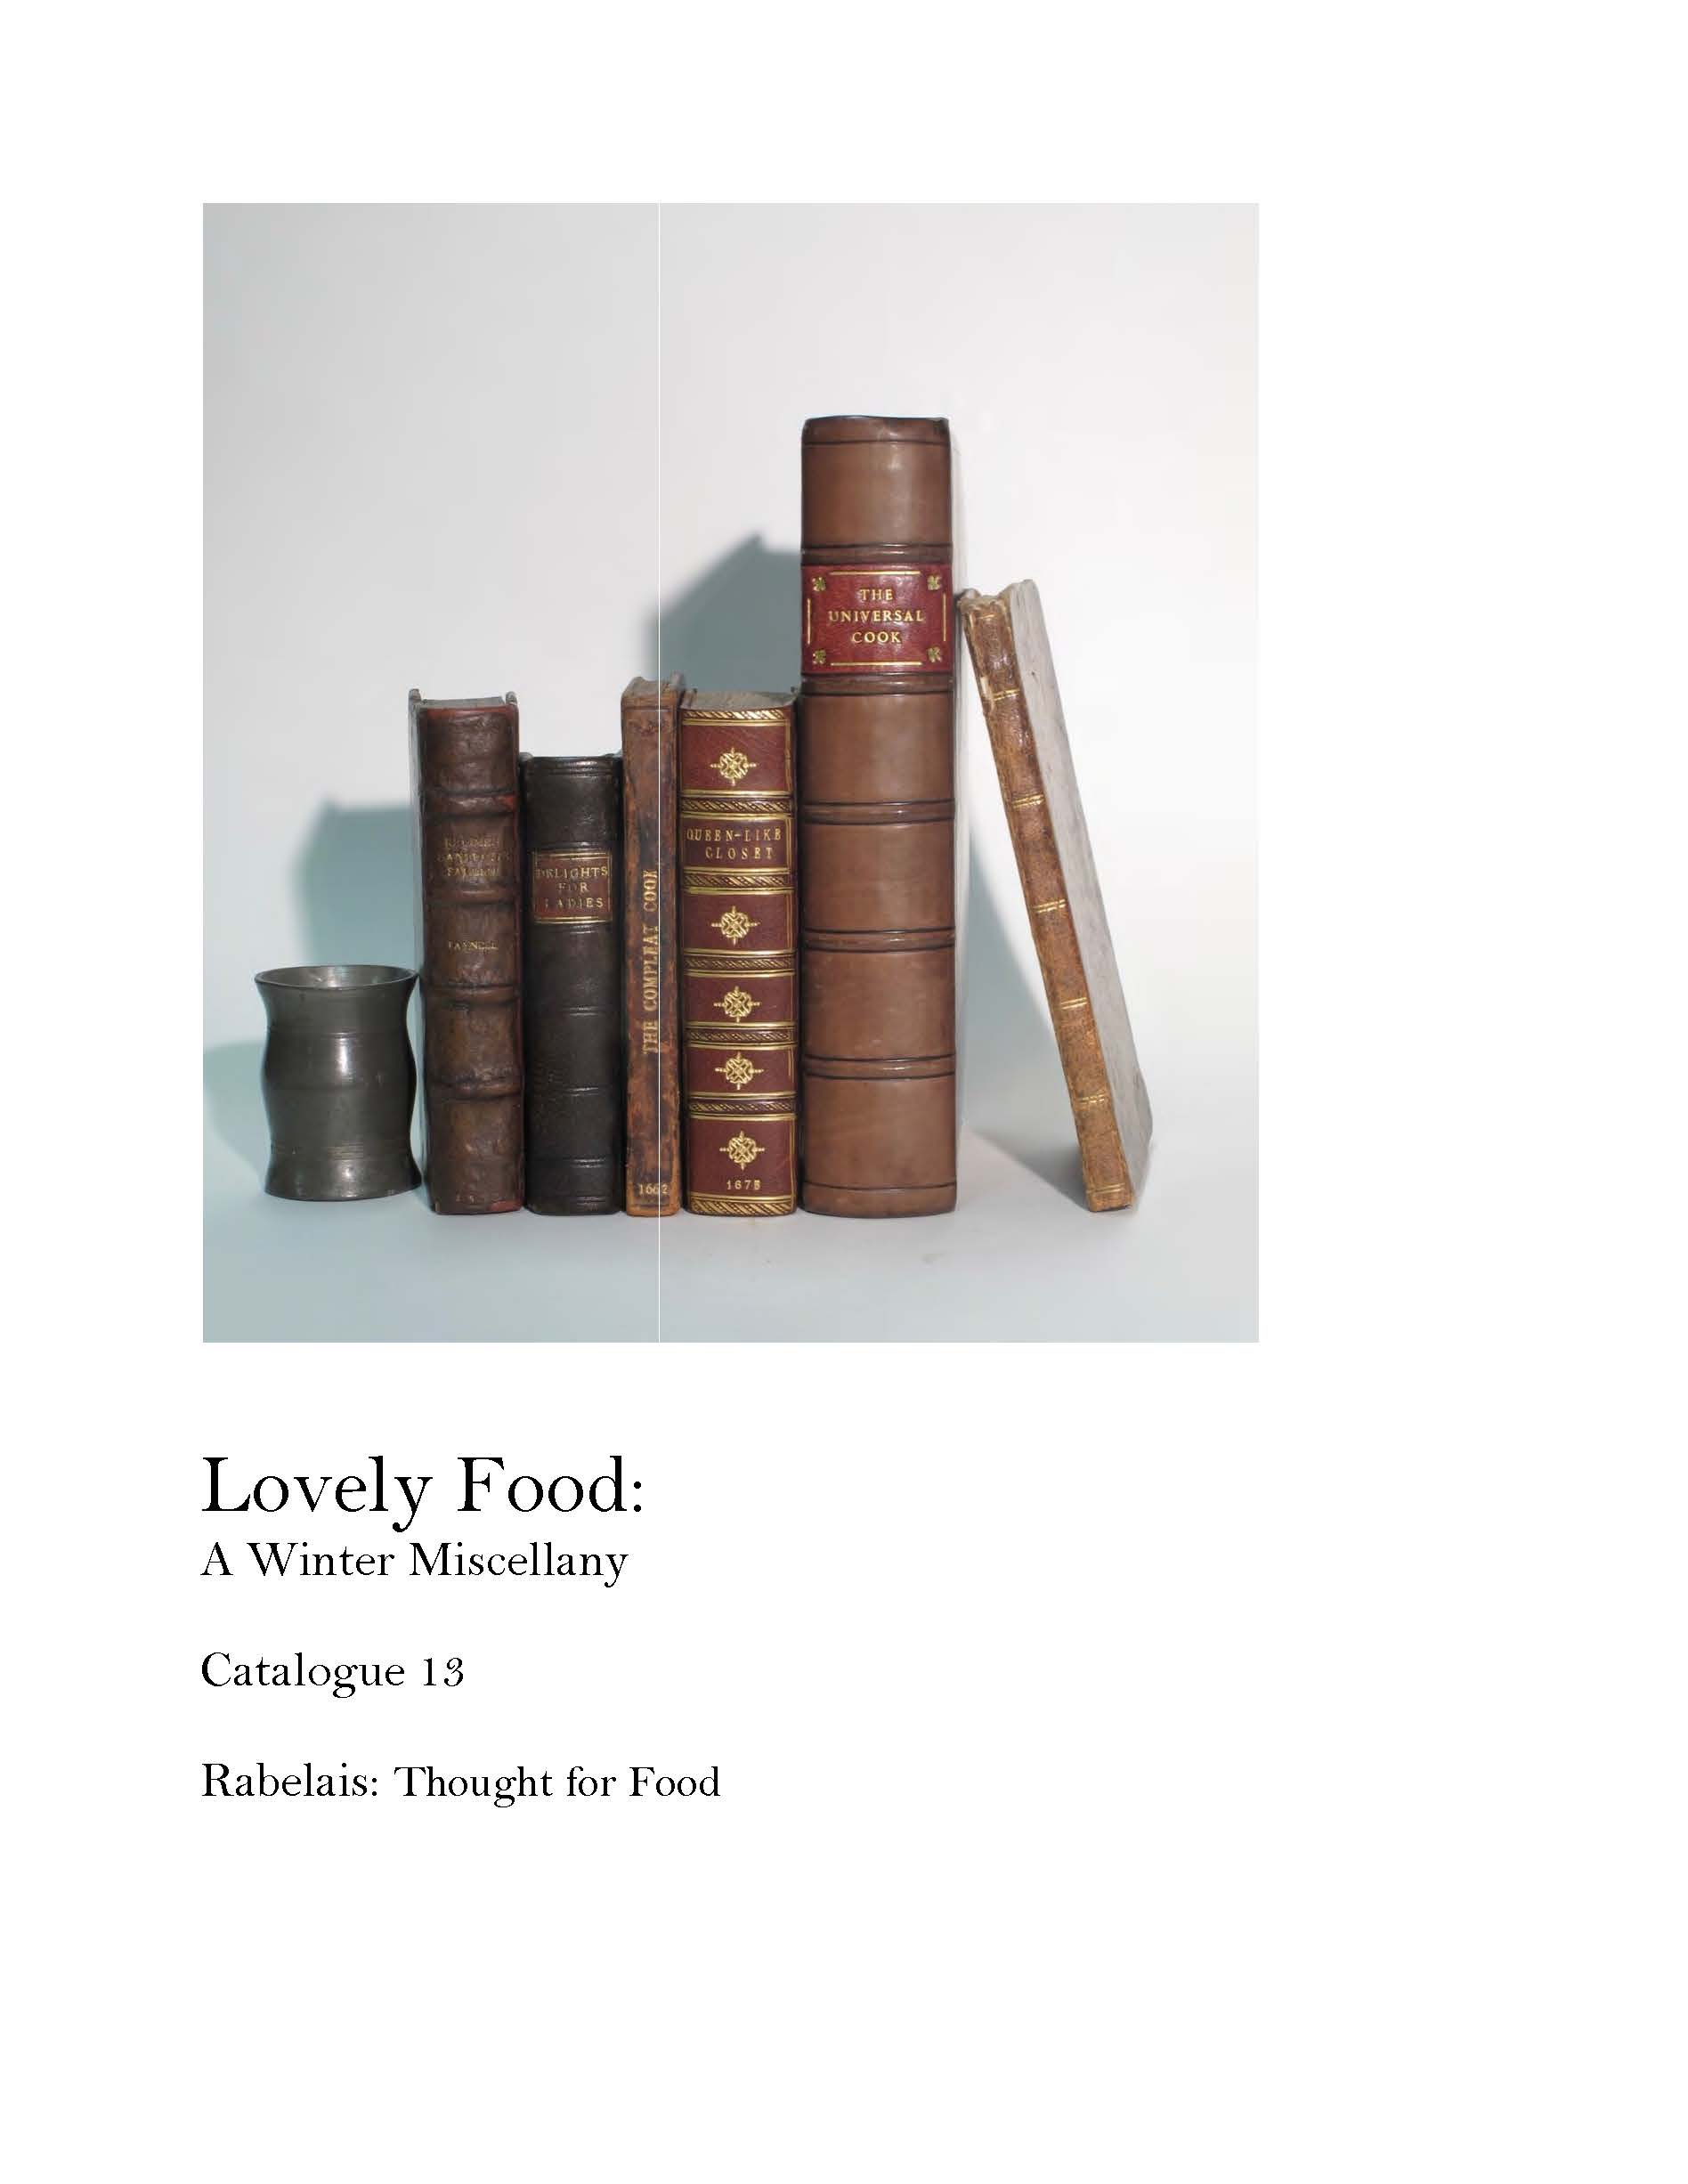 Catalogue 13 'Lovely Food'